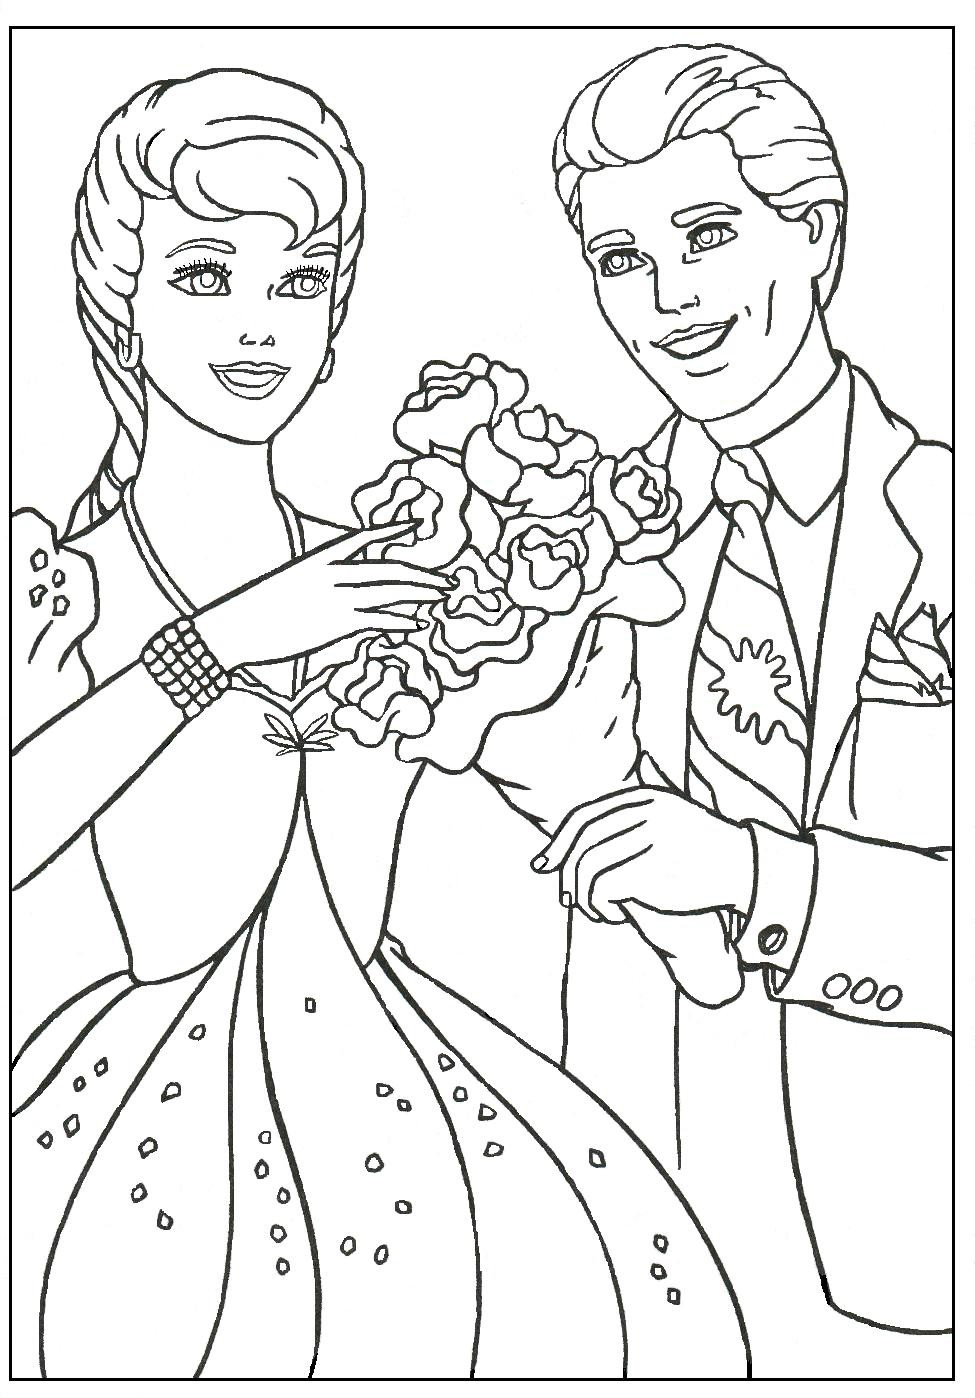 barbie-and-ken-coloring-pages-of-barbie-and-ken-coloring-pages Barbie and Ken Coloring Pages Cartoon